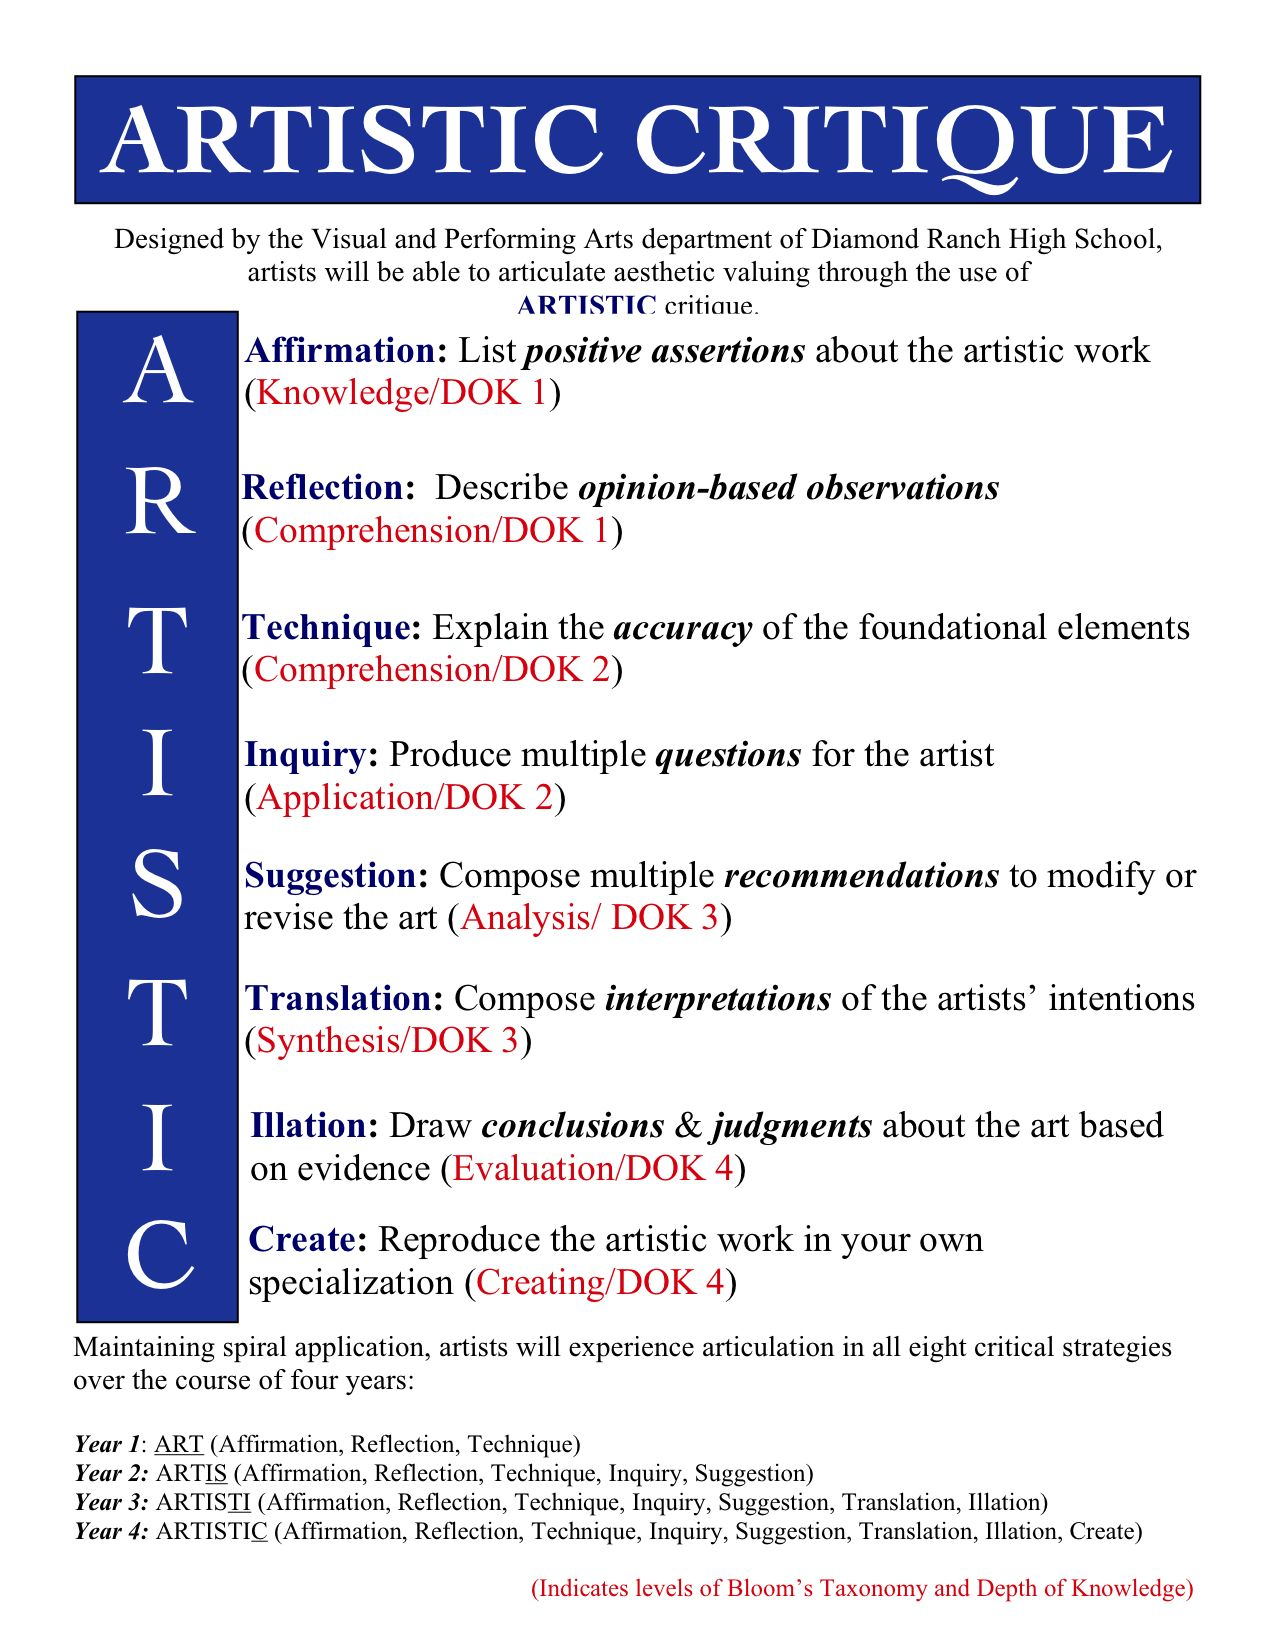 artistic critique a strategy for critiquing art critical artistic critique figure integrating writing and critical thinking about art into classroom projects